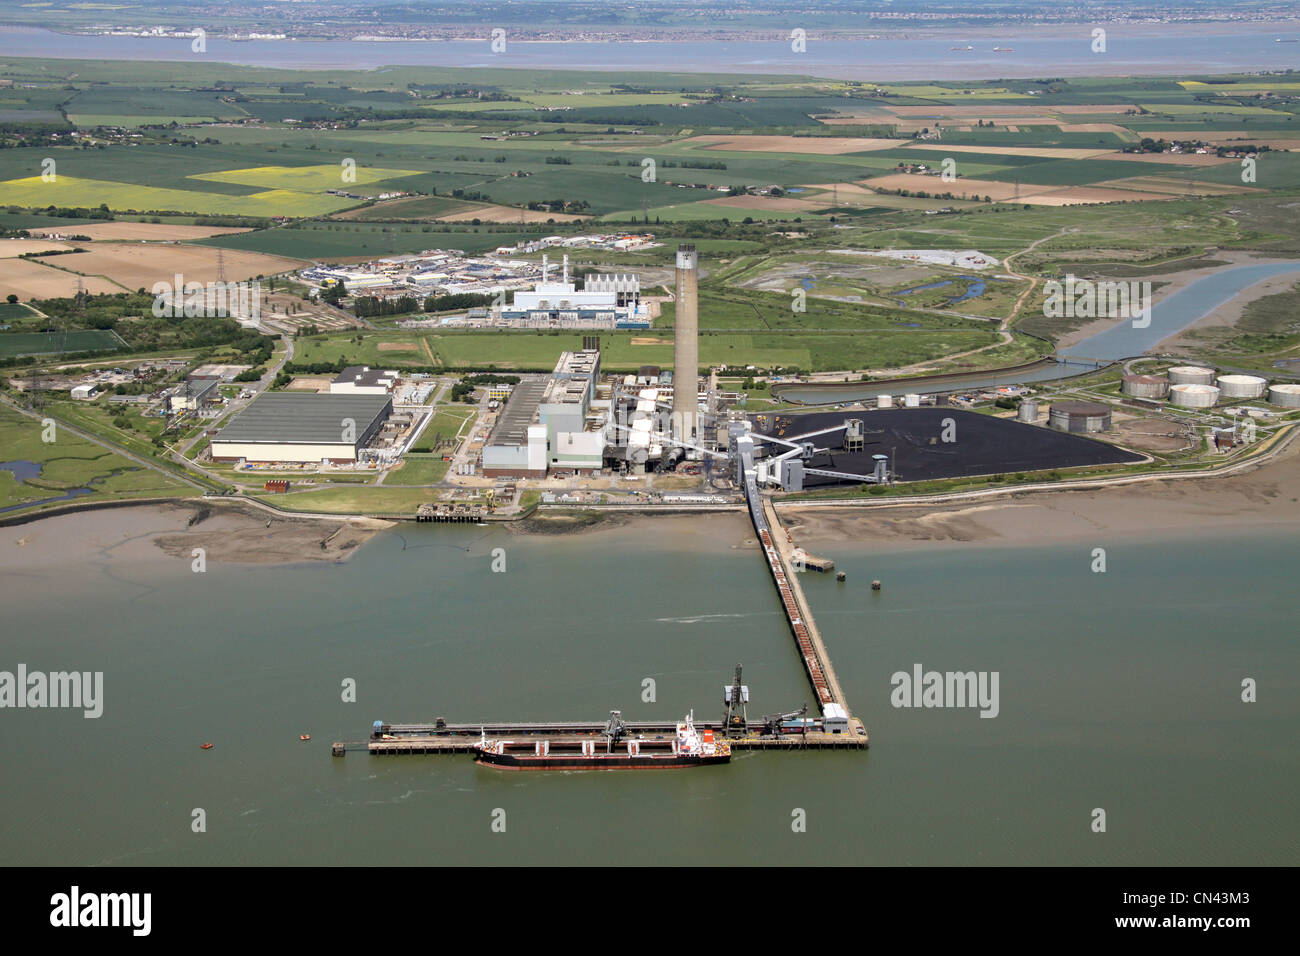 Aerial view of Kingsnorth Power Station and Jetty, River Medway, Kent - Stock Image